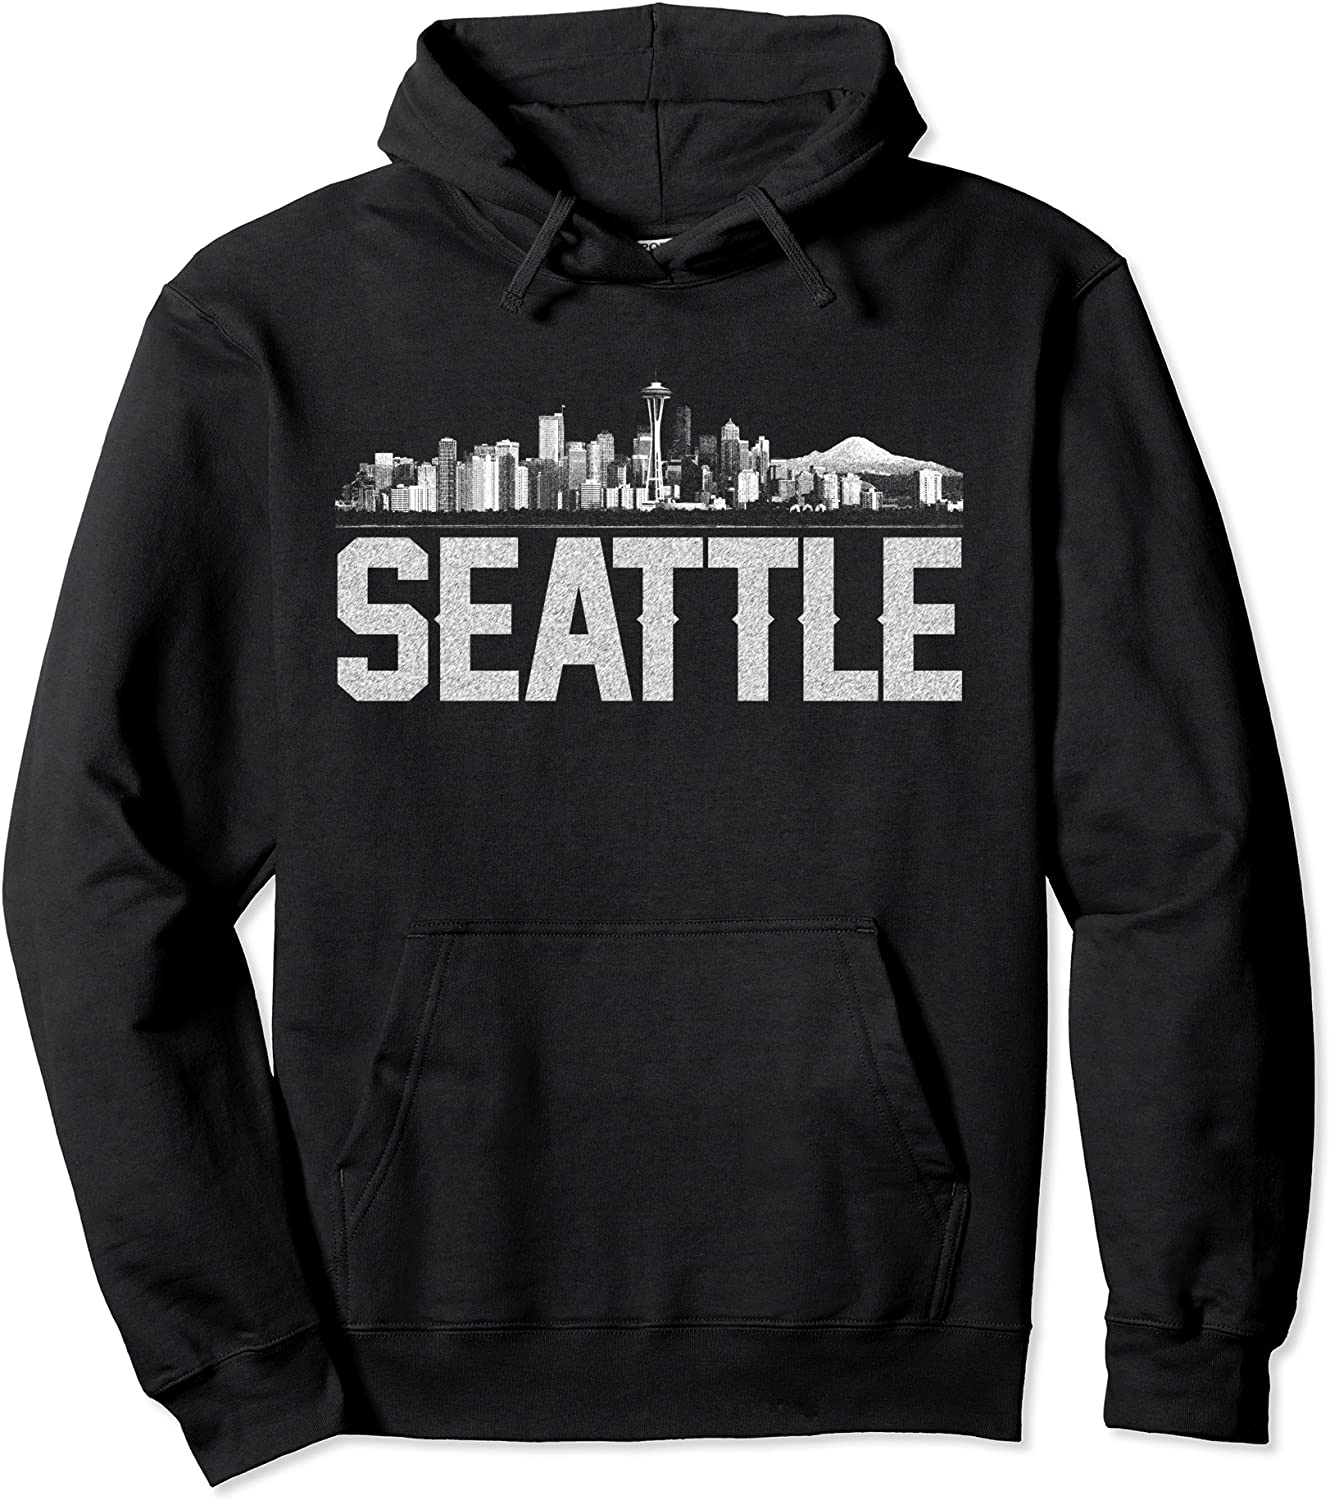 Max 51% OFF Seattle Skyline Hoodie for Women Men excellence